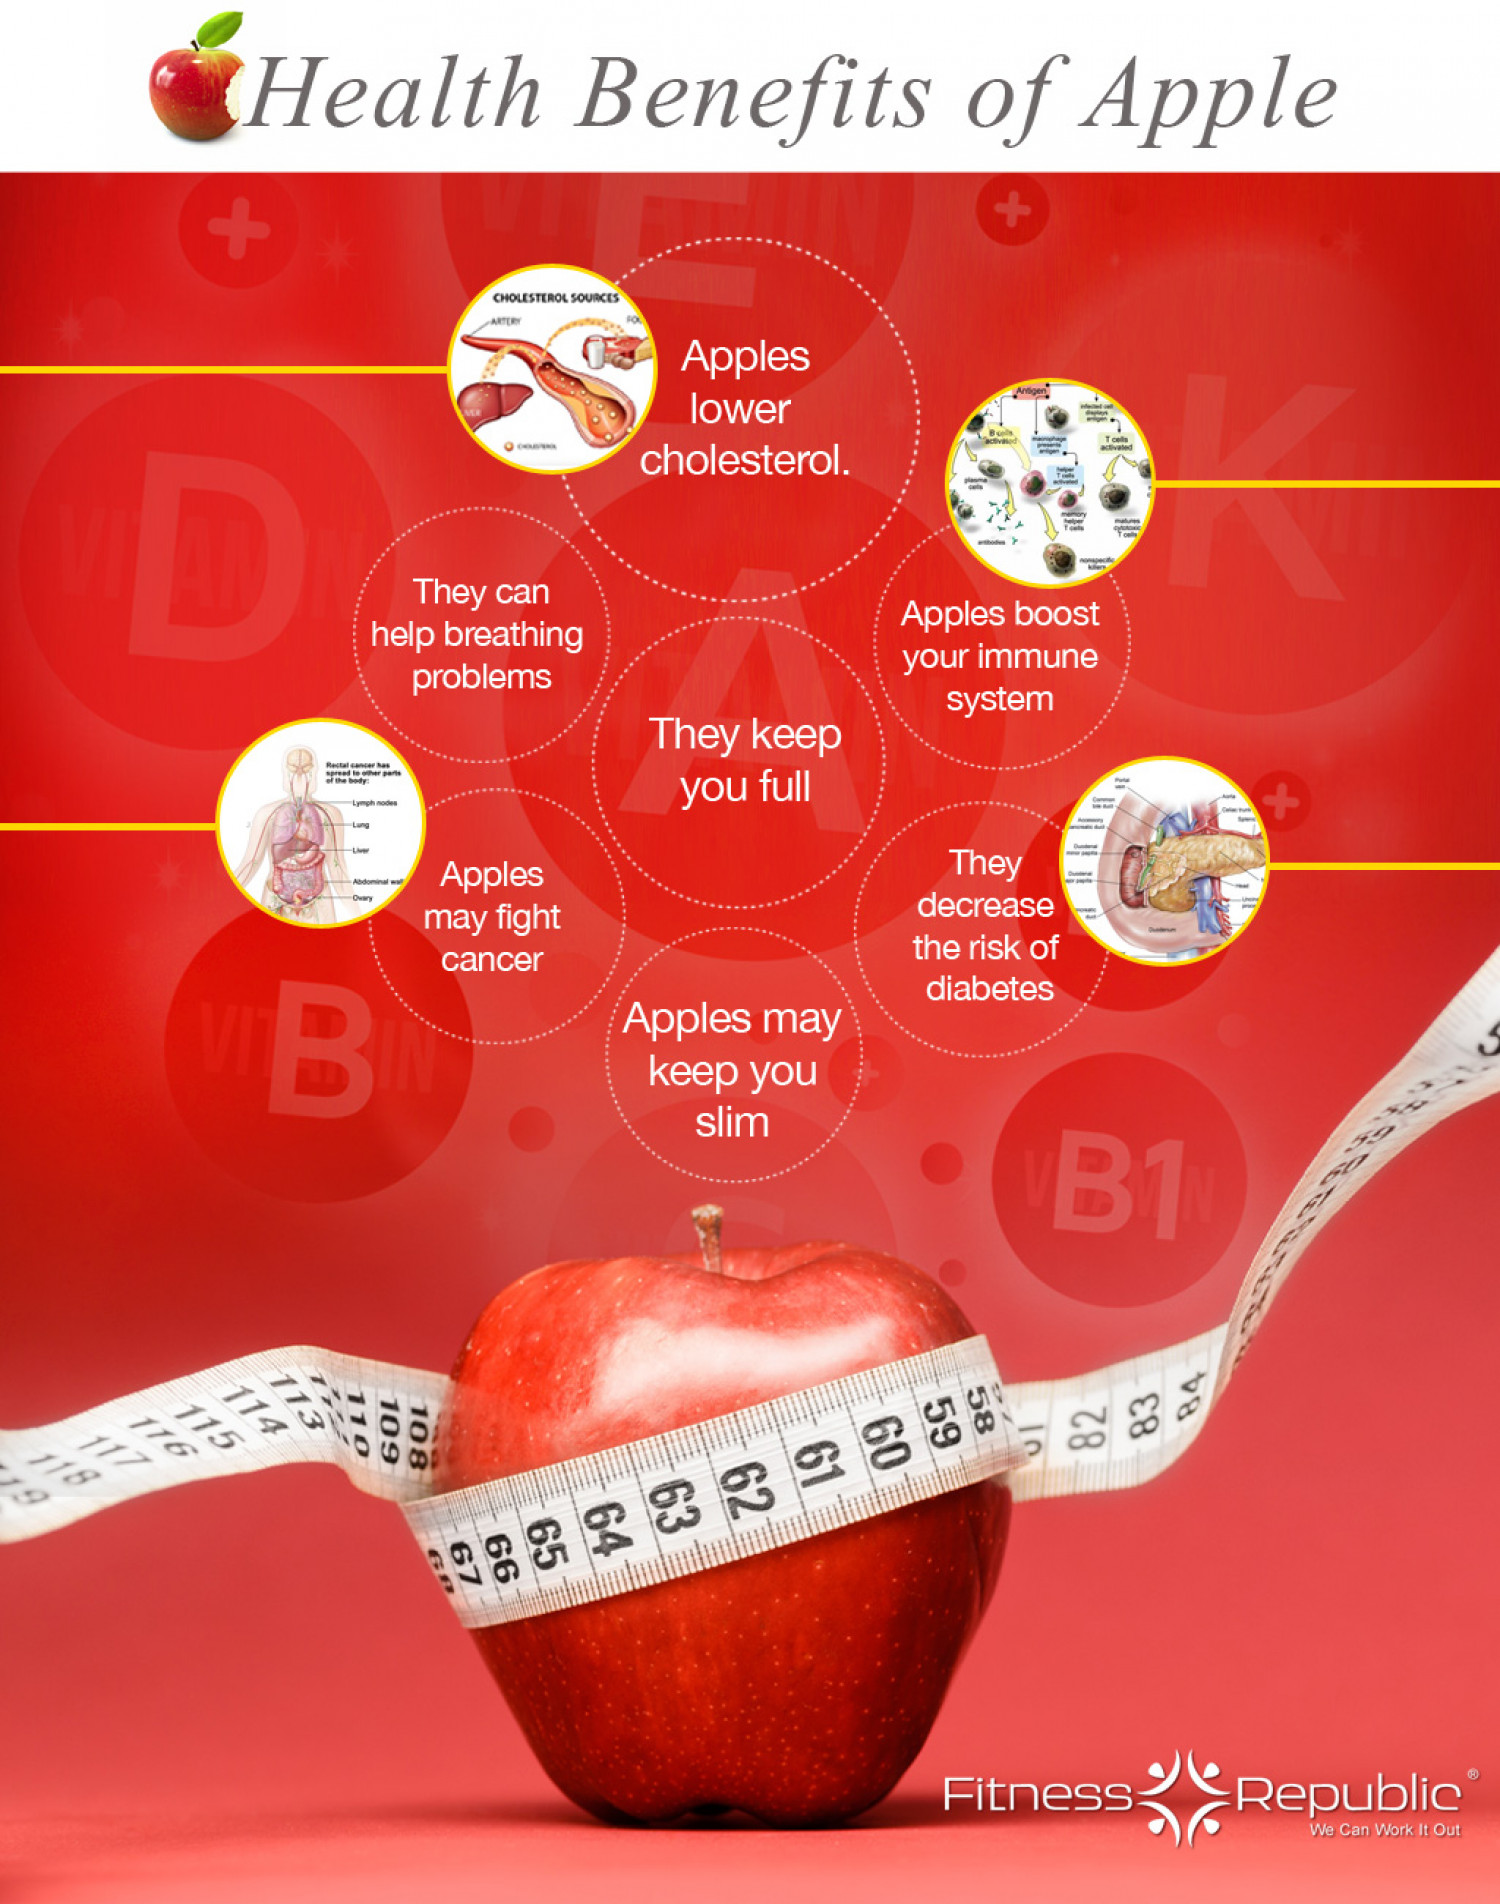 Health Benefits of Apple Infographic